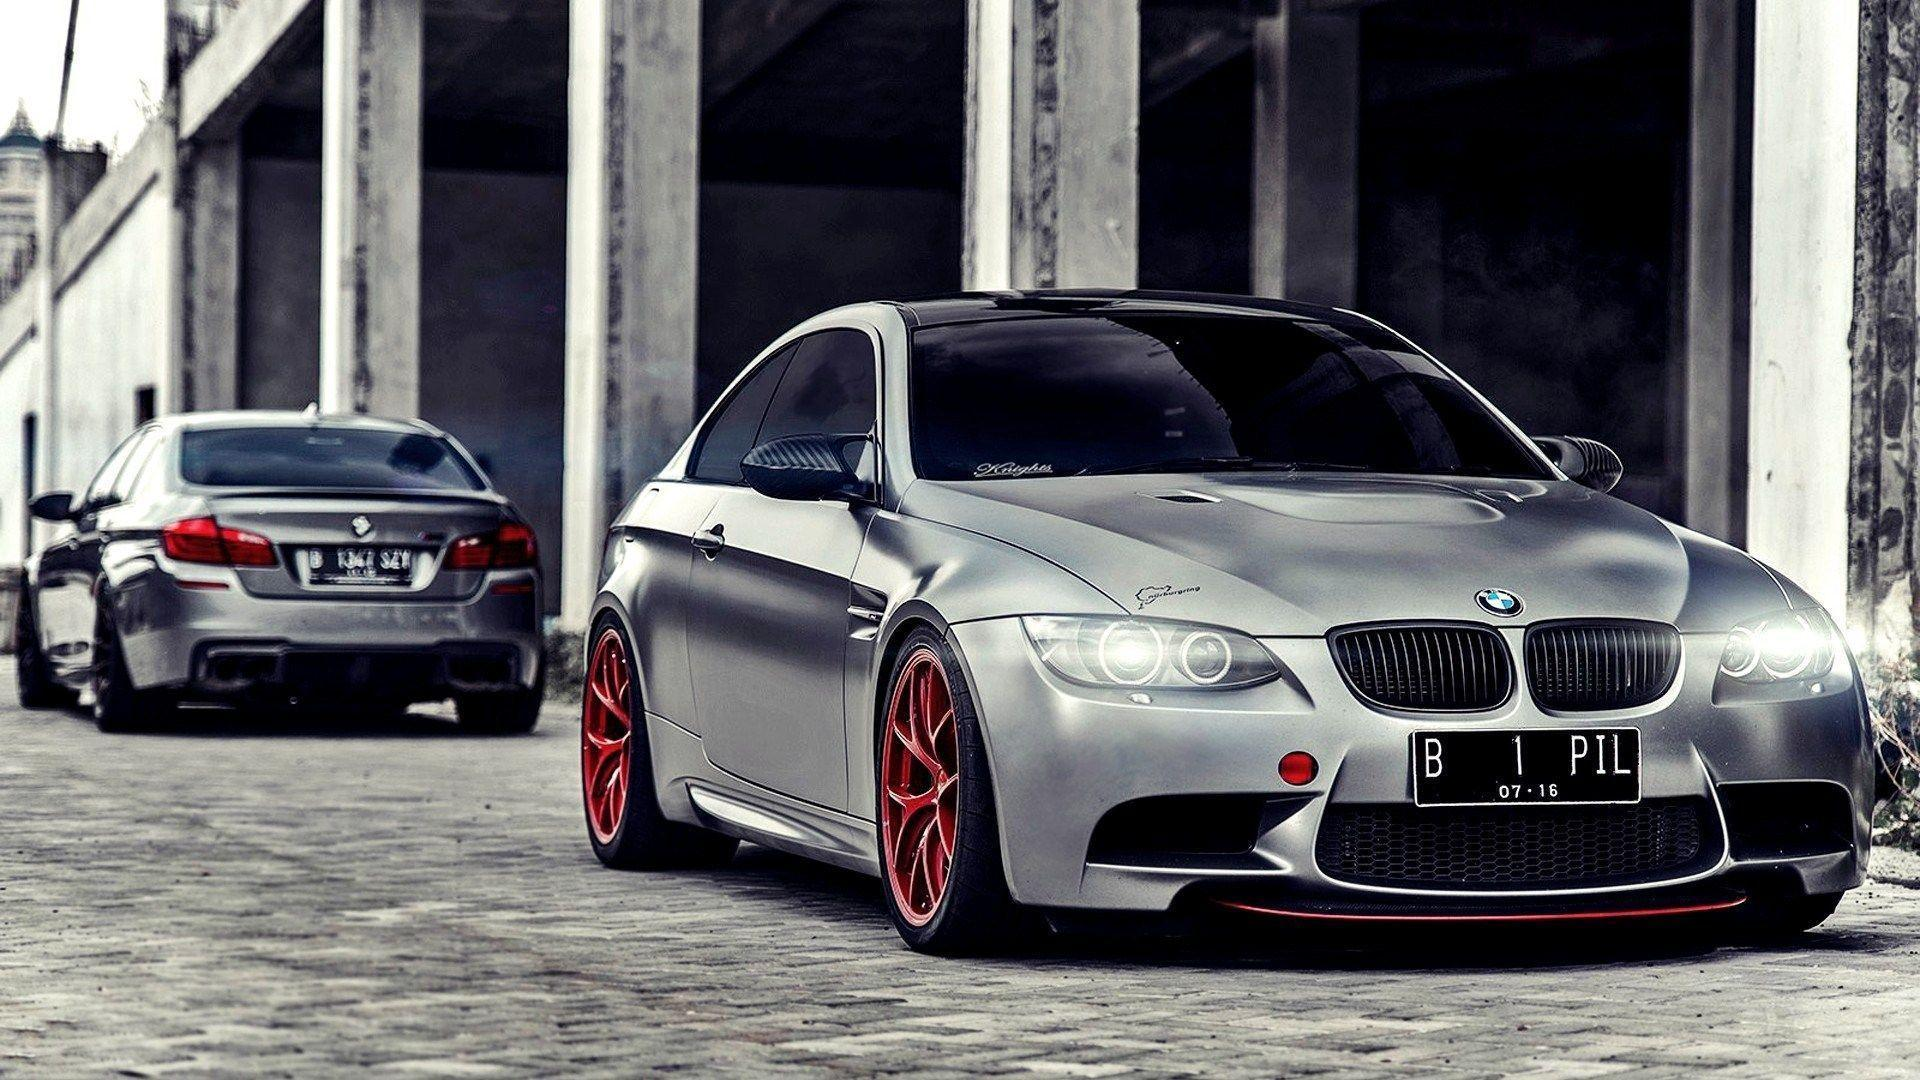 BMW M5 F10M and BMW M3 E92 HD Wallpapers